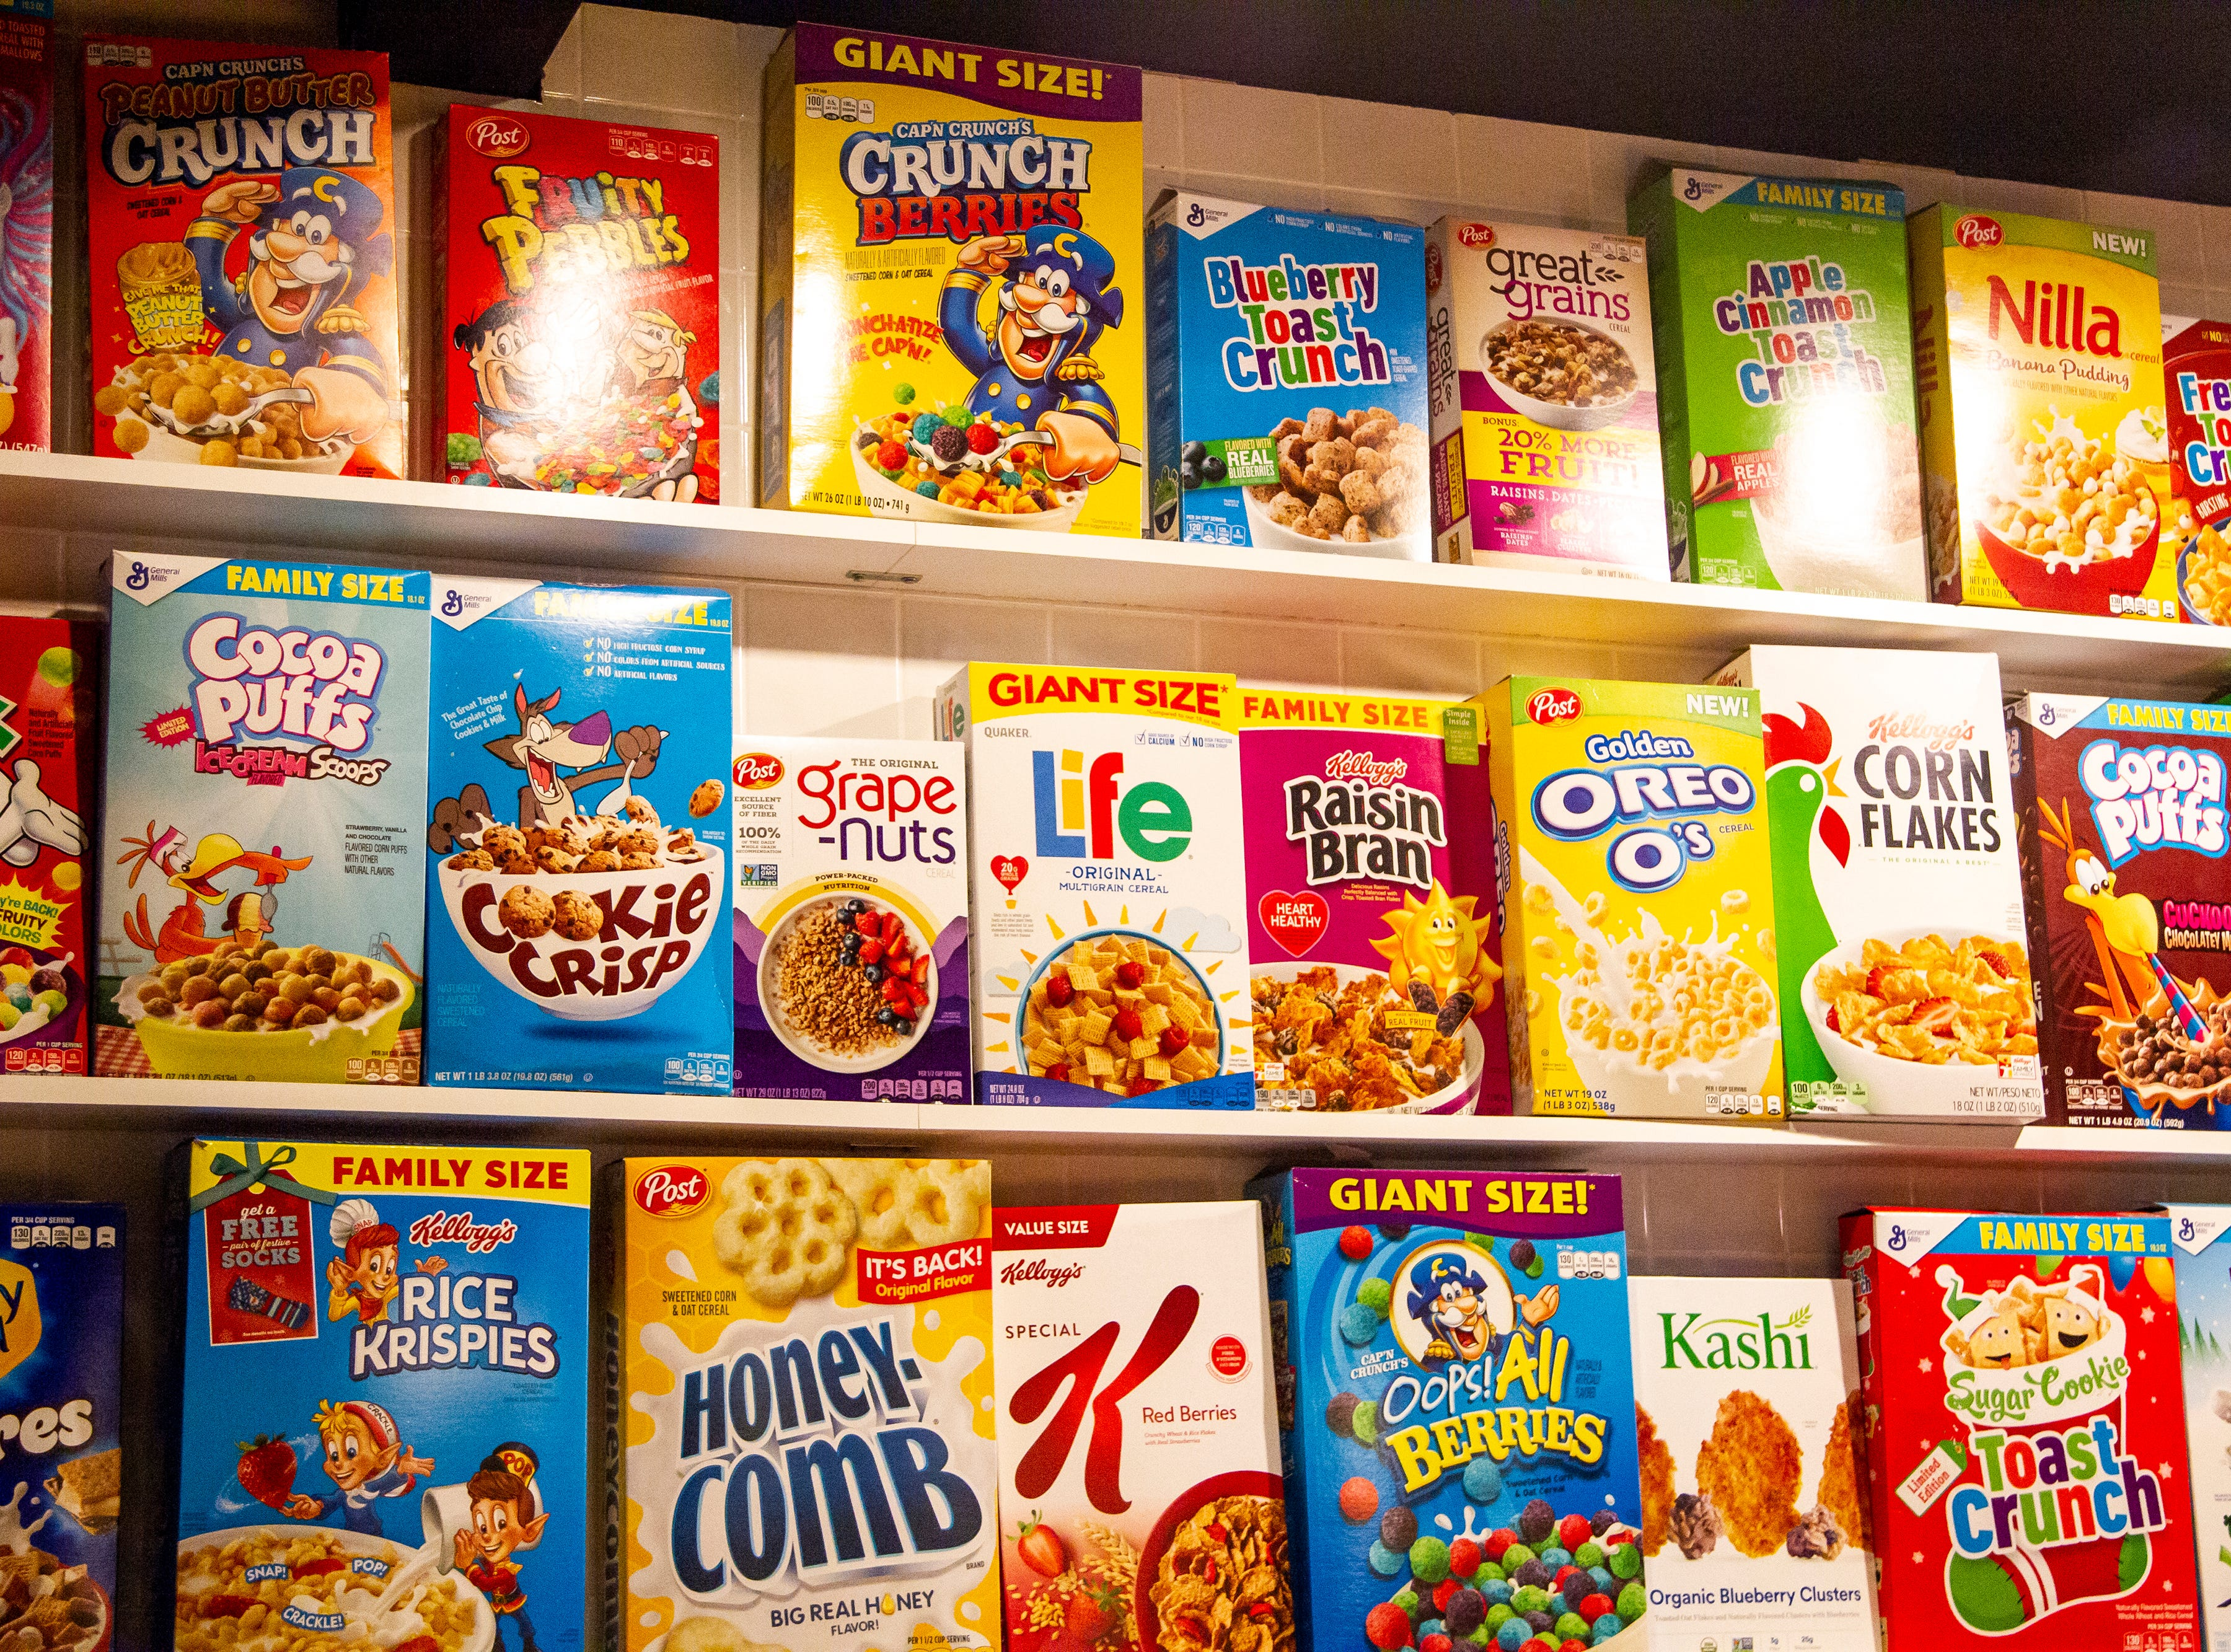 A selection of cereals are seen on Thursday, Dec. 13, 2018, at Melk in Iowa City. Melk is a new diner located on Washington Street that serves breakfast all day along with cereal shakes, smashburgers and more.